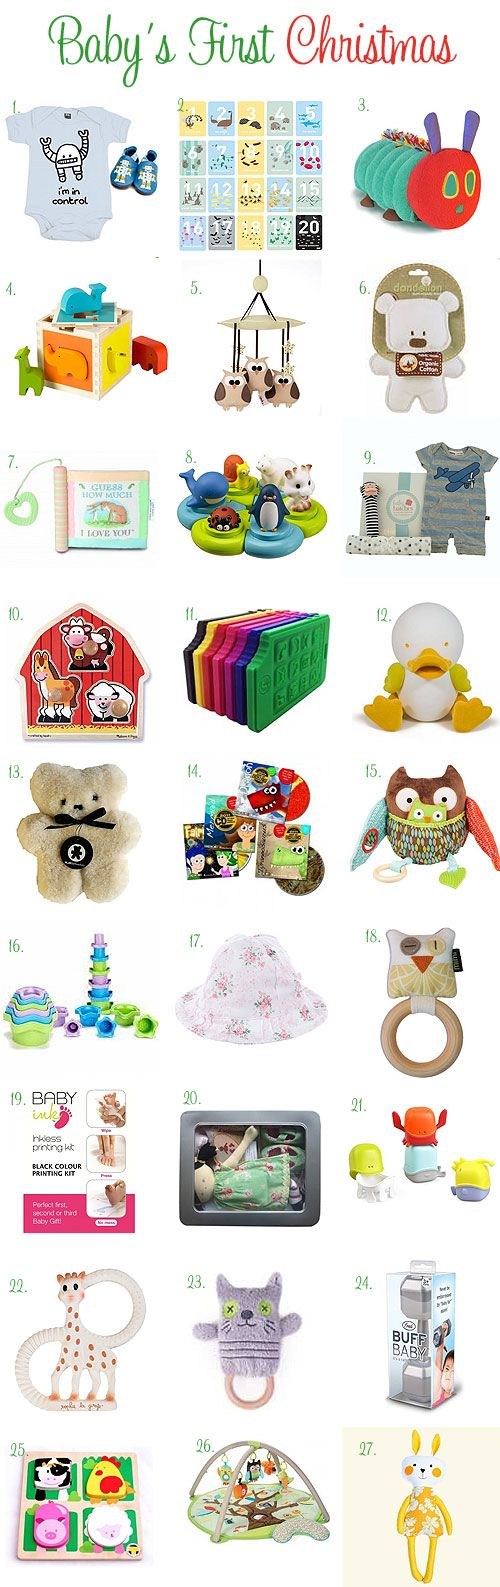 Baby's First Christmas - Gift ideas for bubs